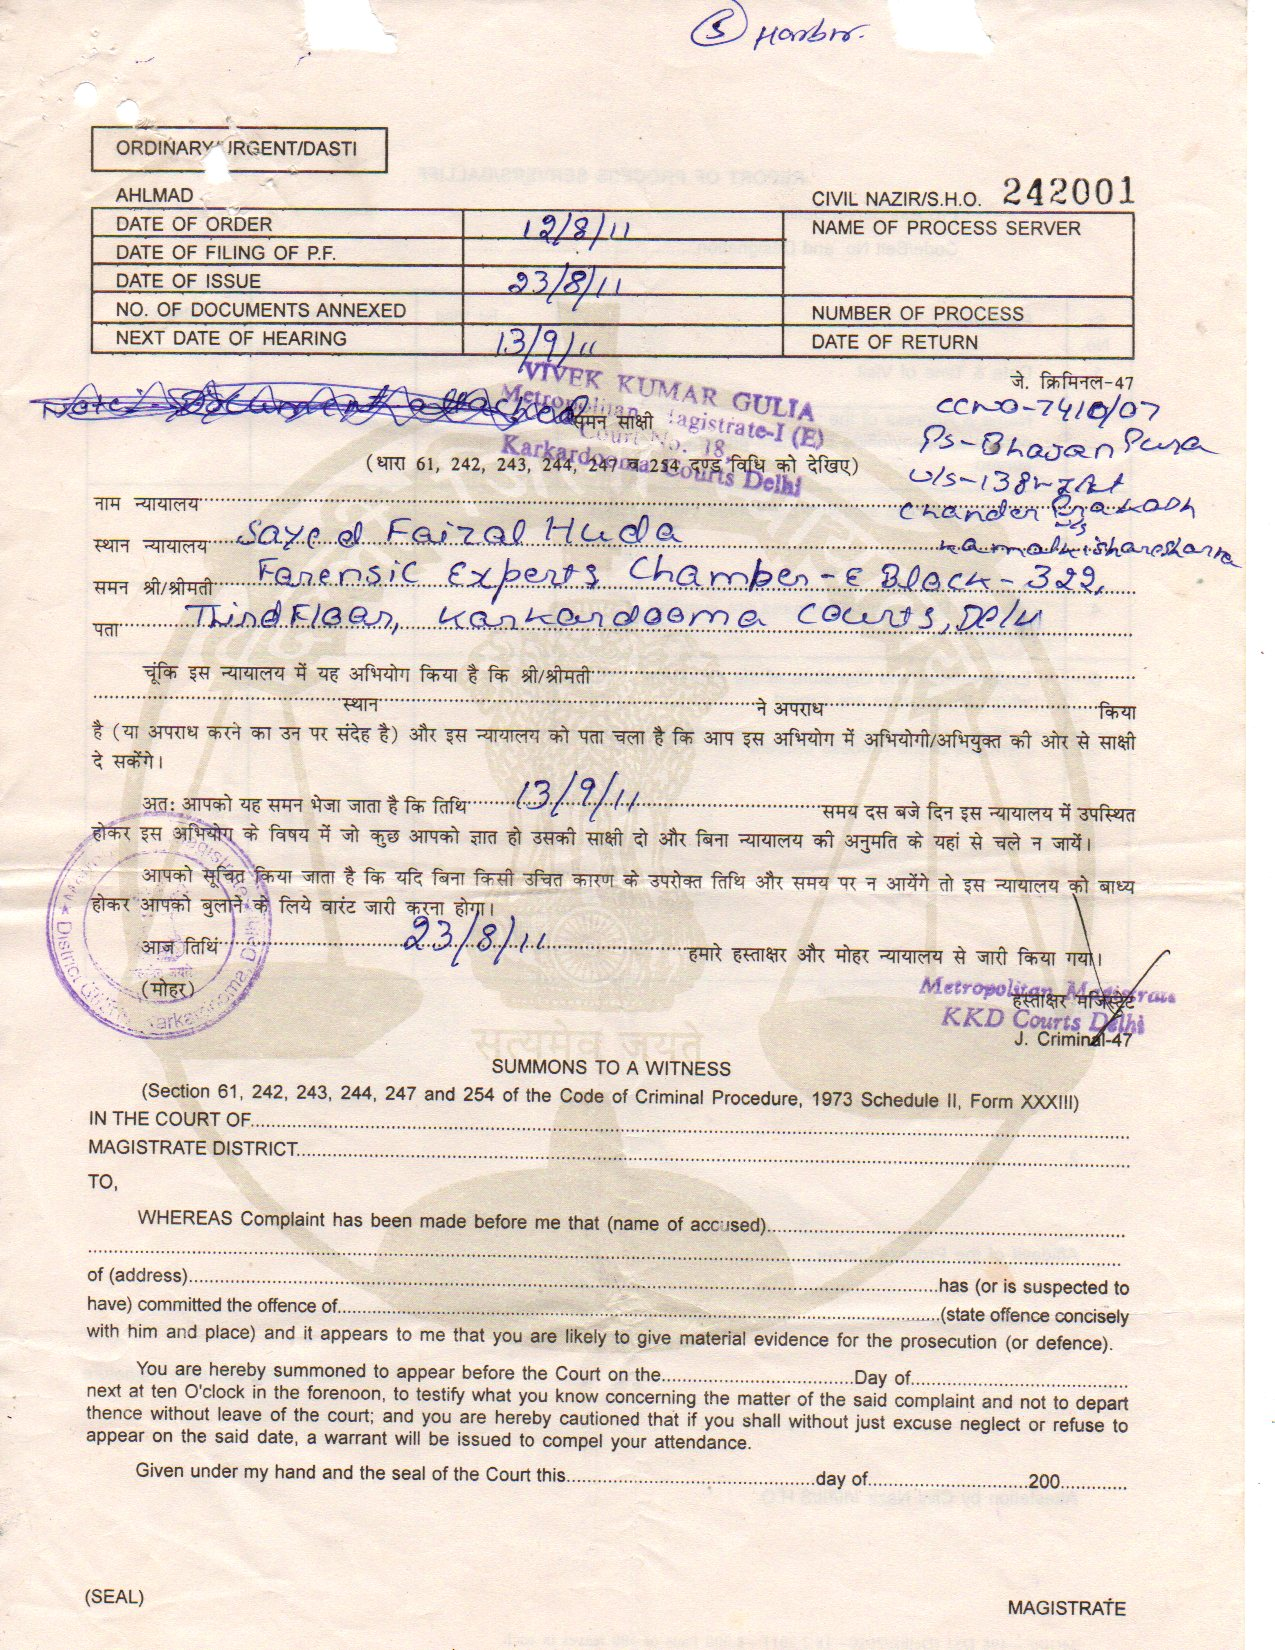 SUMMON FROM THE COURT OF SH. VIVEK KUMAR GULIA, KARKARDOOMA